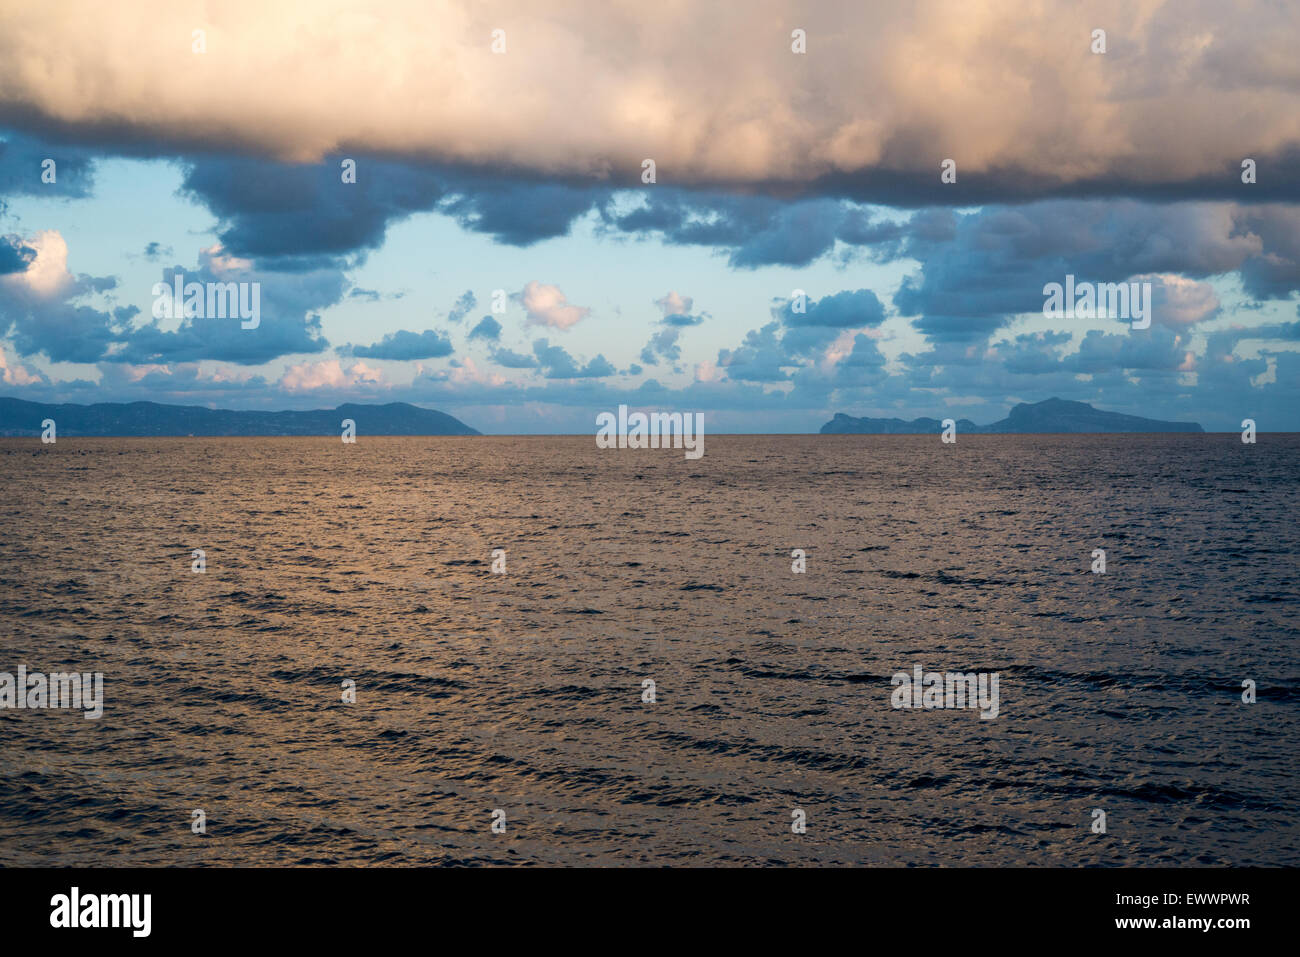 view of the gulf of naples on a cloudy evening - Stock Image